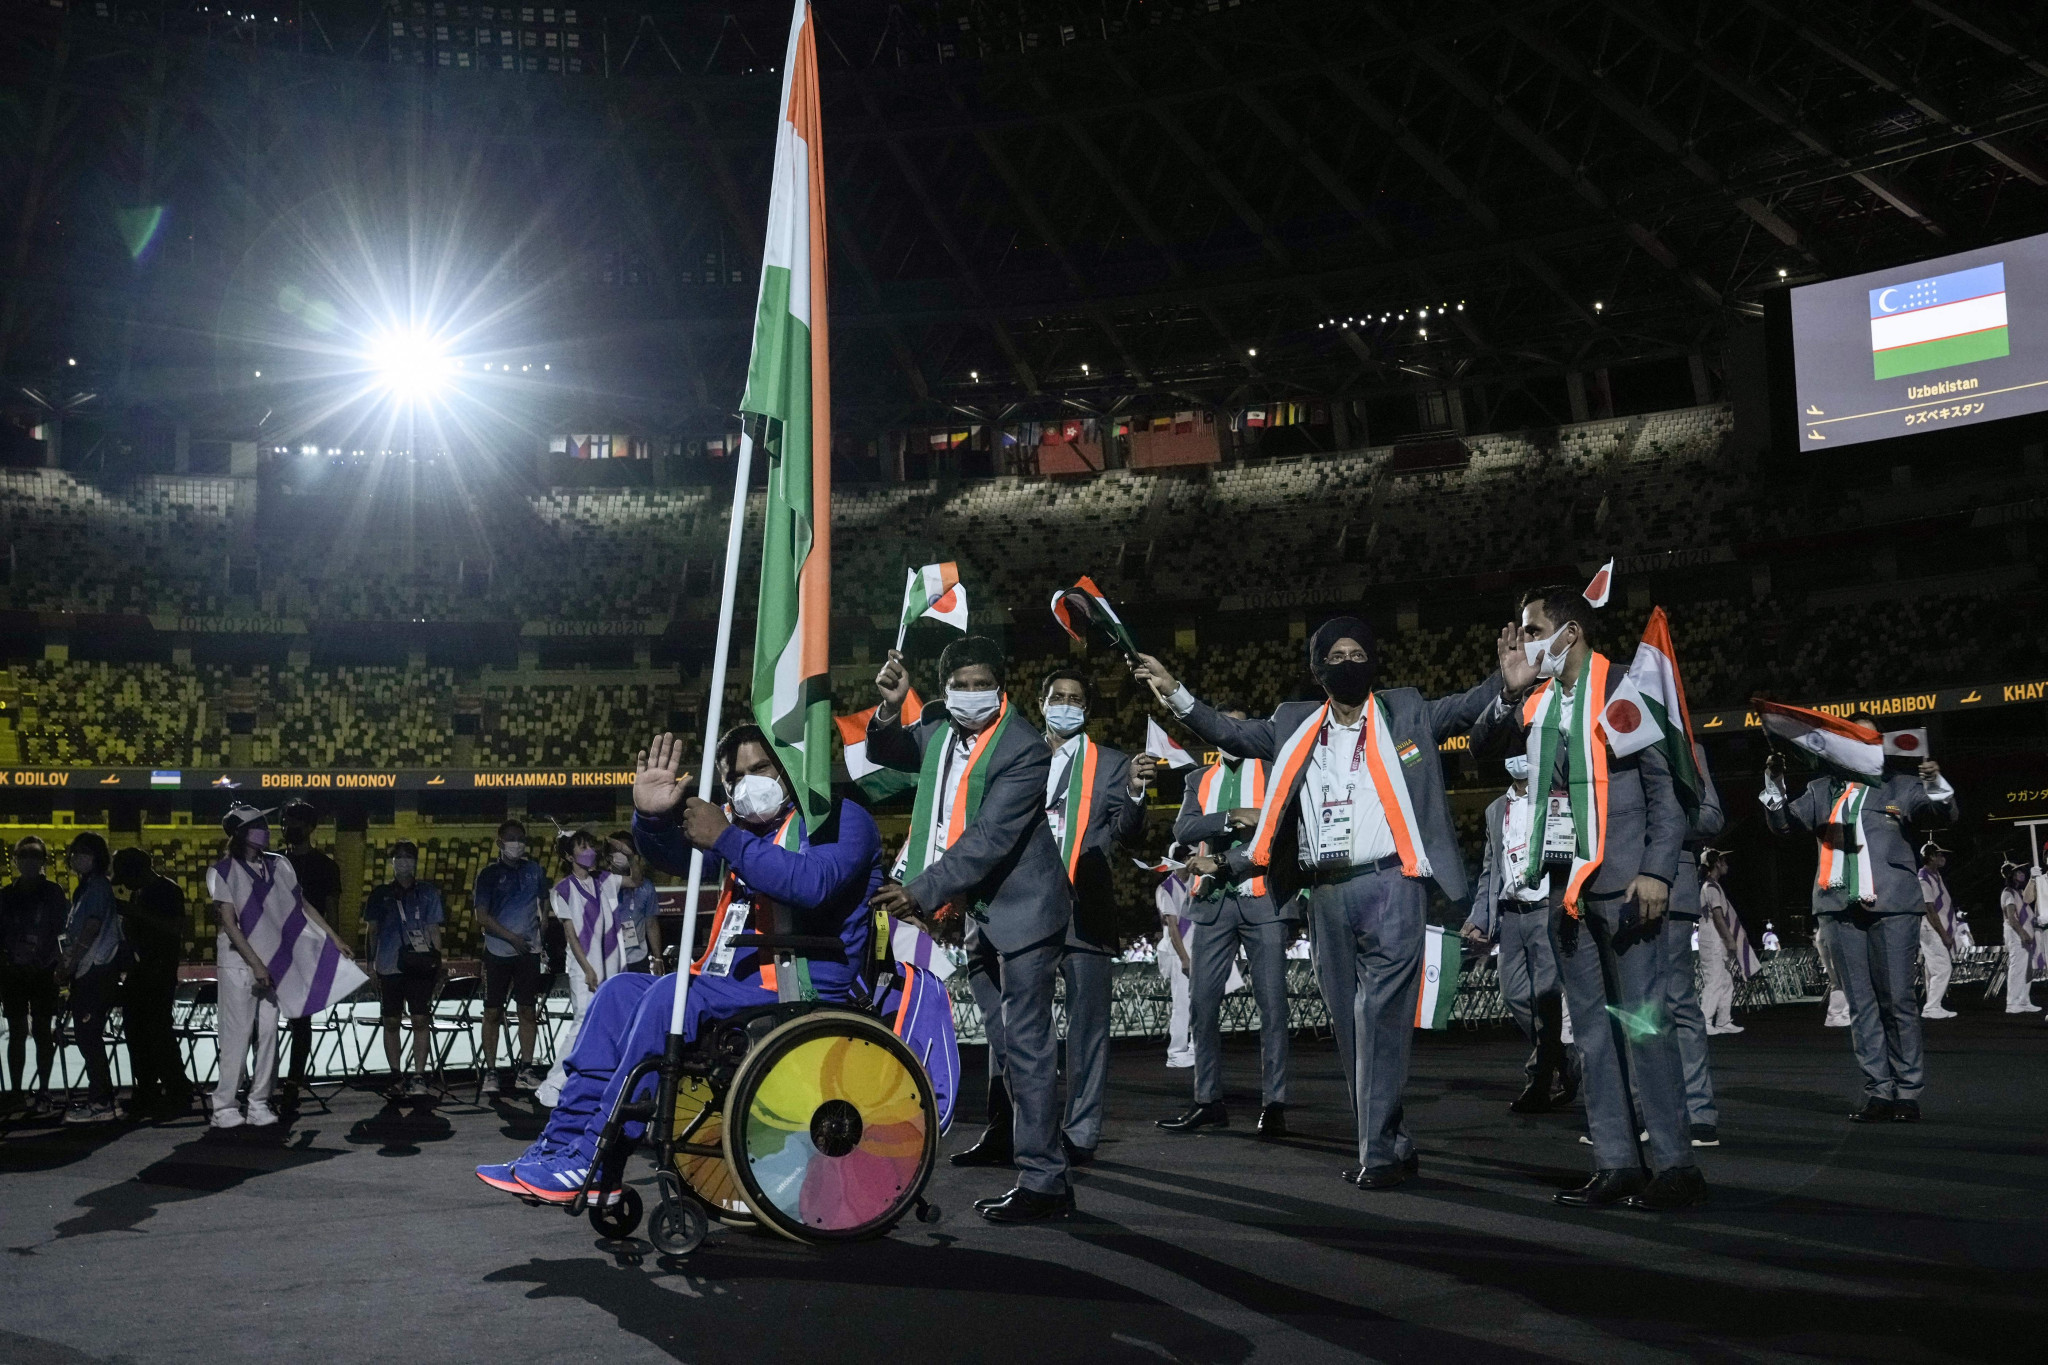 Paralympic Committee of India aims for 25 medals at Paris 2024 after historic showing in Japan